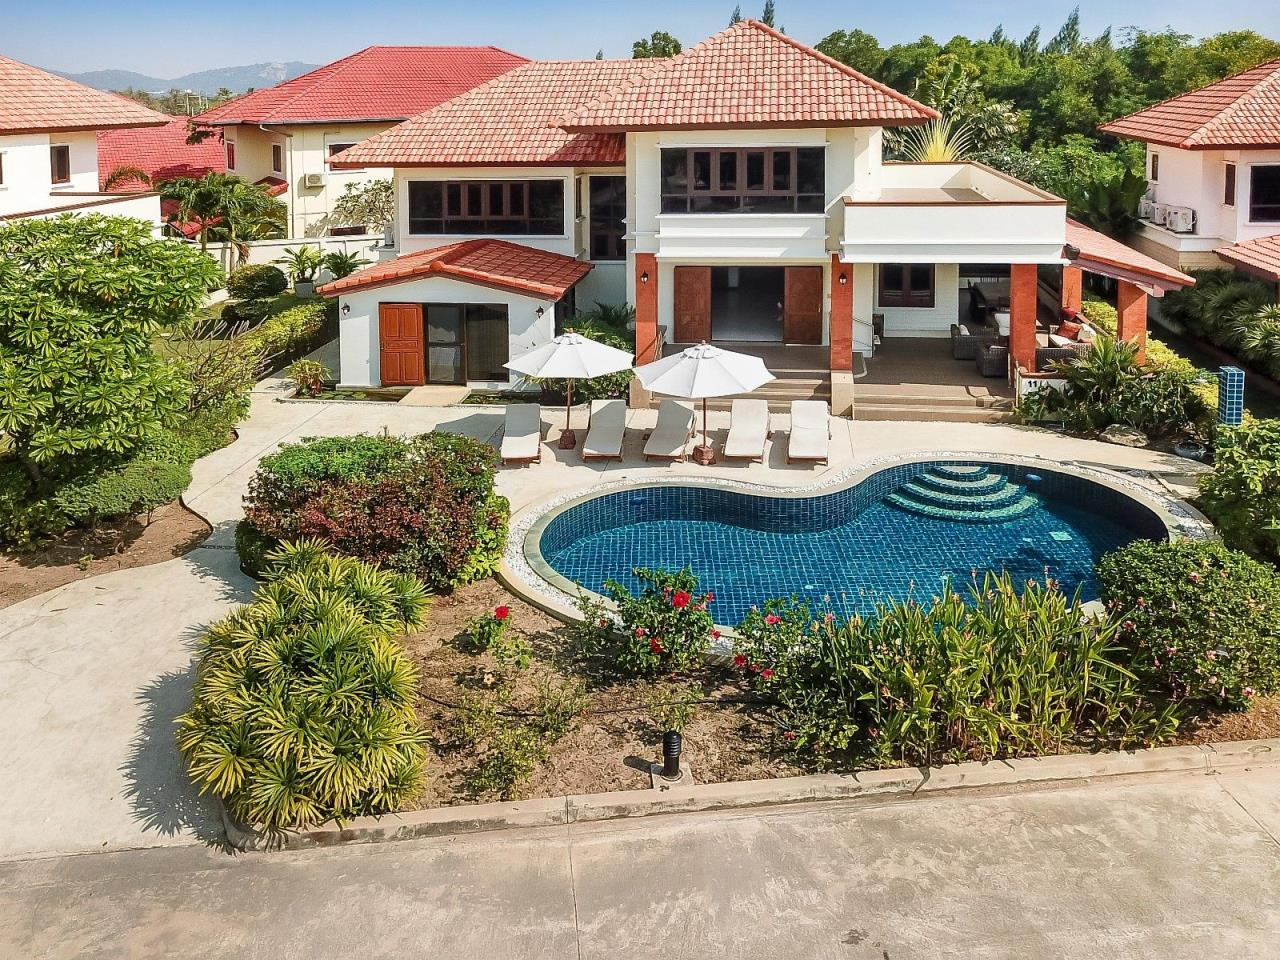 Thaiproperty1 Agency's 4 Bedroom Pool Villa in Hua Hin 2